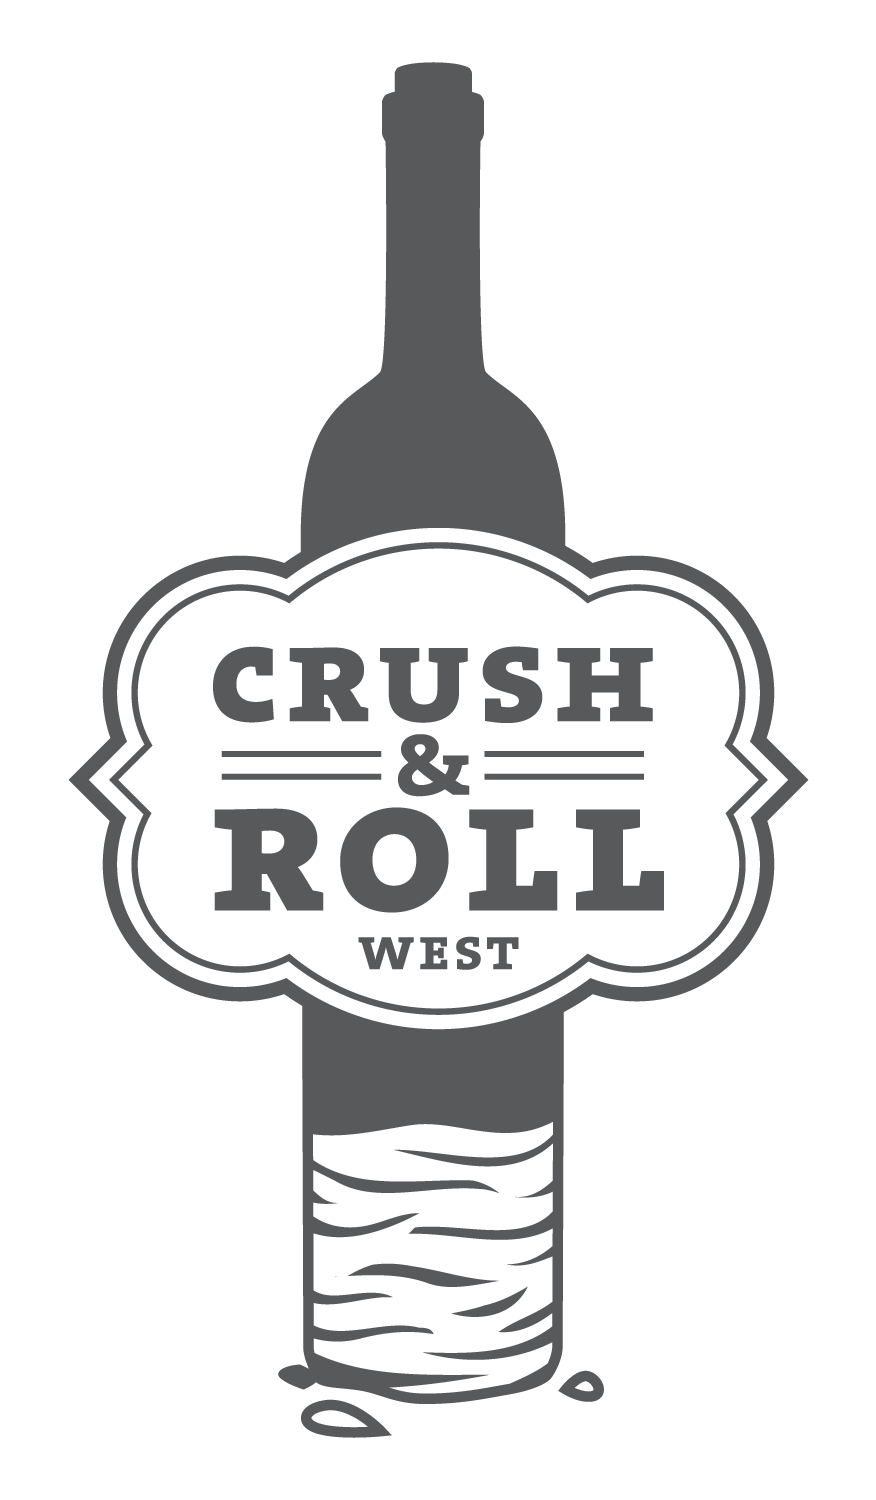 Crush & Roll West: Central California Coast's Premiere Cigar and Wine Event